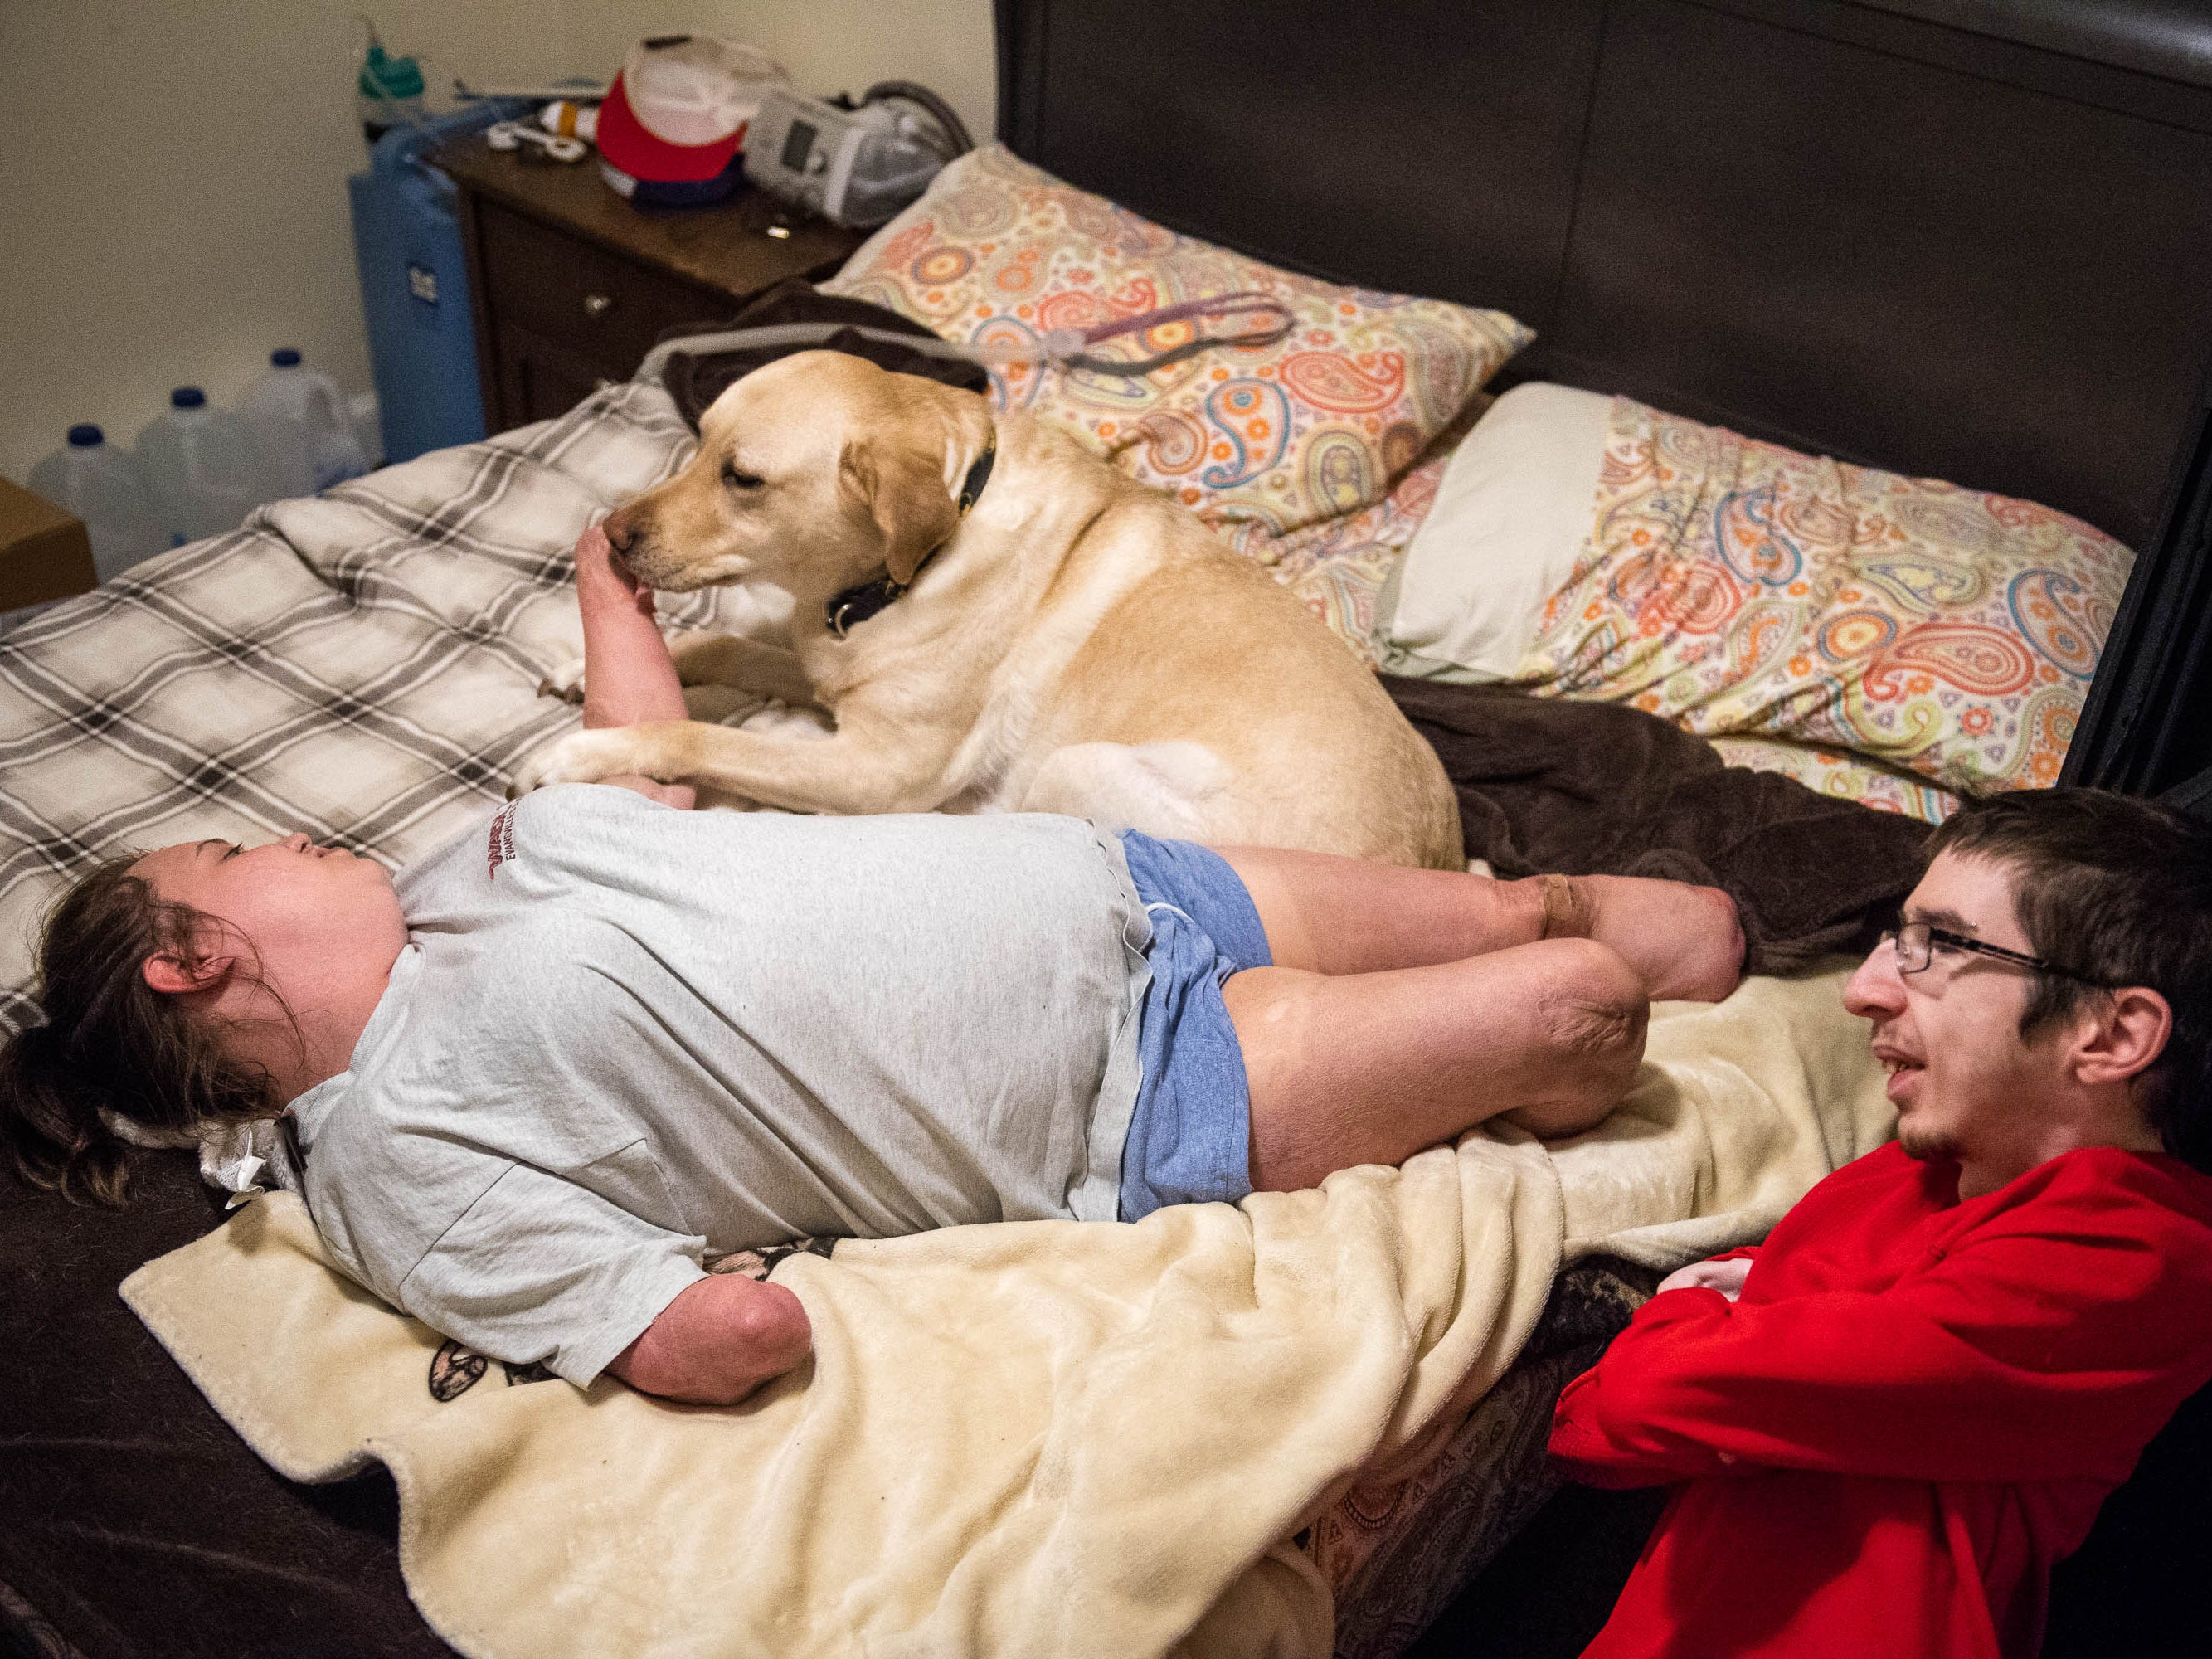 Kendra Creek and Wade Conway spend time with Wade's service dog, Dagwood. Wade, born with arthrogryposis multiplex congenita, and Kendra, whose bacterial meningitis left her a quadruple amputee, spend their evenings without a caregiver in the apartment the couple  shares.